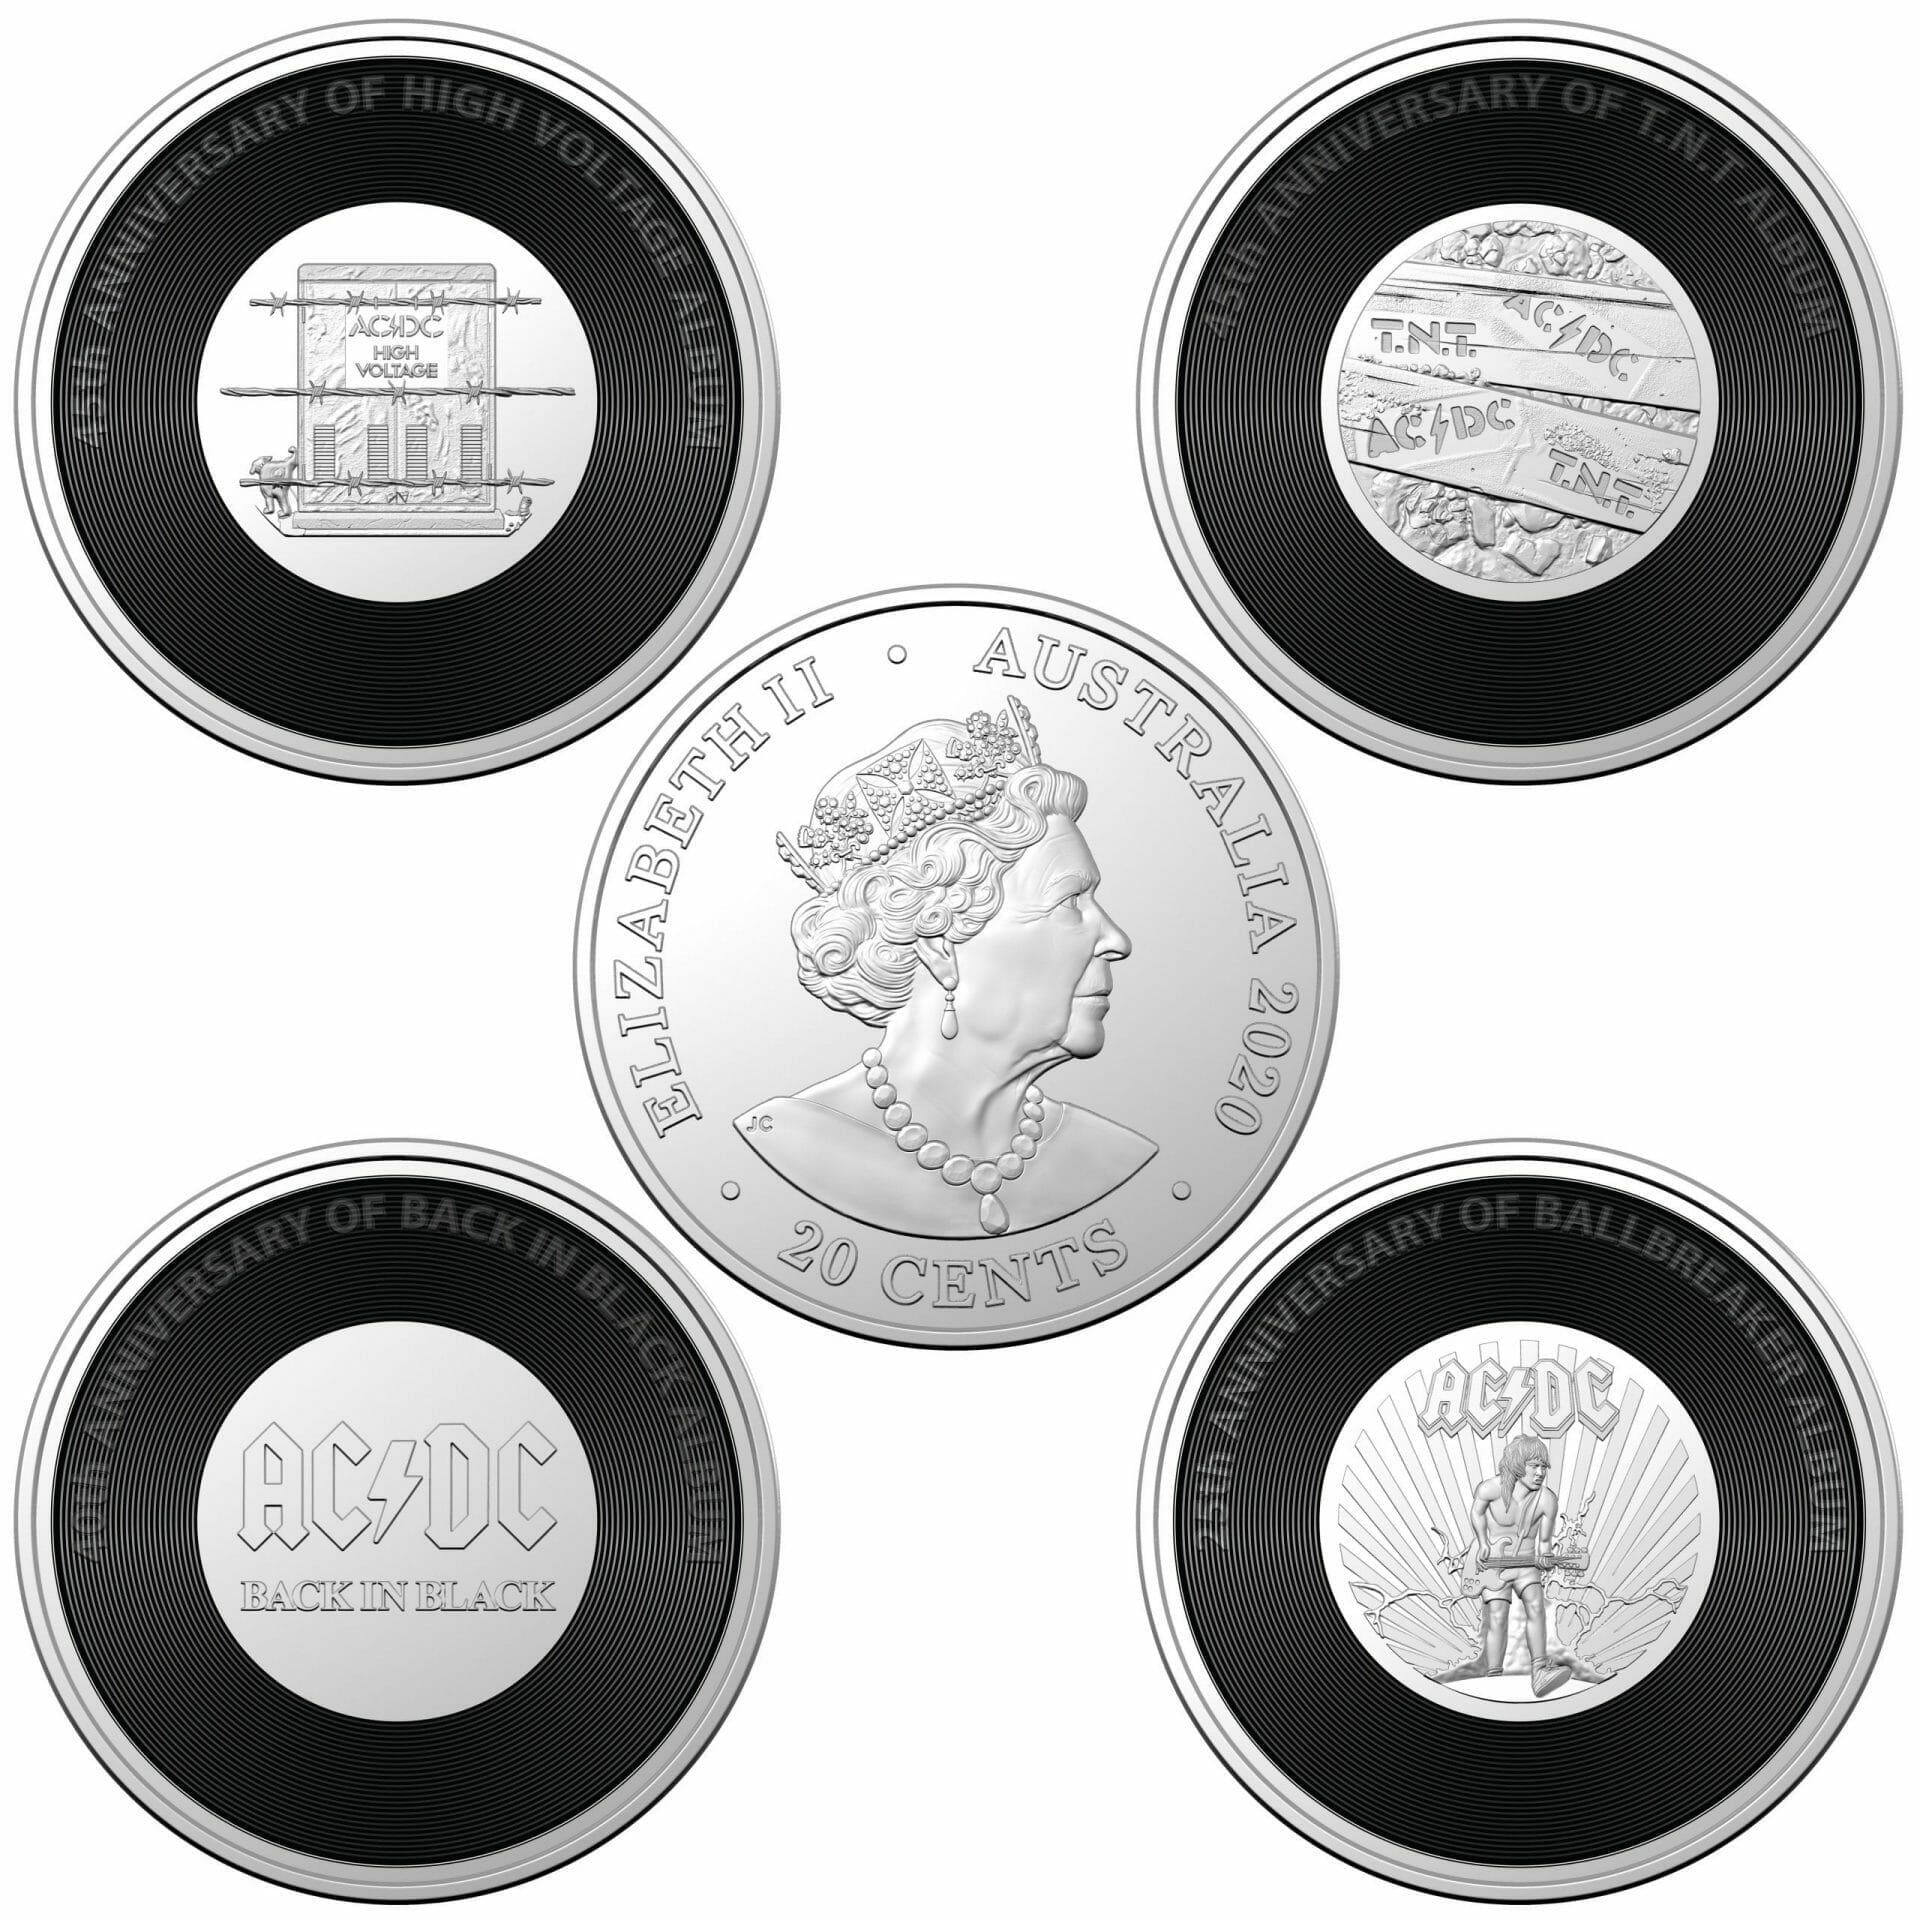 BACK IN BLACK 2020 AC//DC 20c Coloured Uncirculated Coin in Card